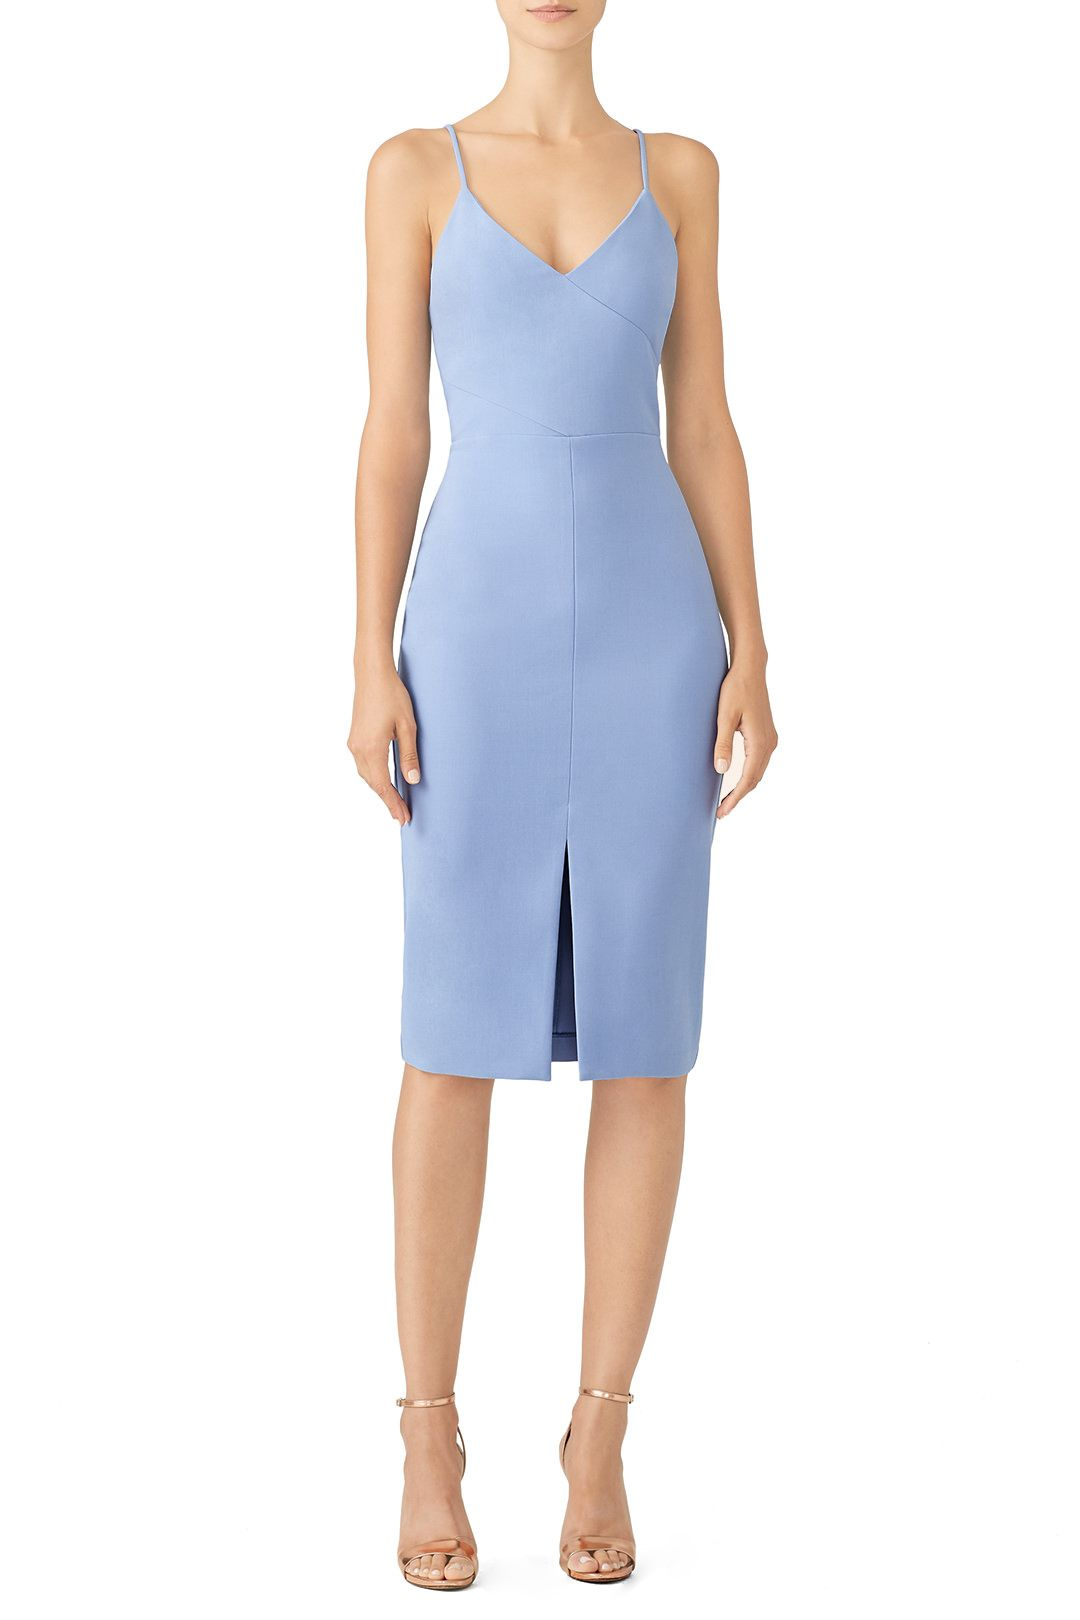 Rent Brooklyn Dress By Likely For 30 Only At Rent The Runway Brooklyn Dress Classy Dress Dresses